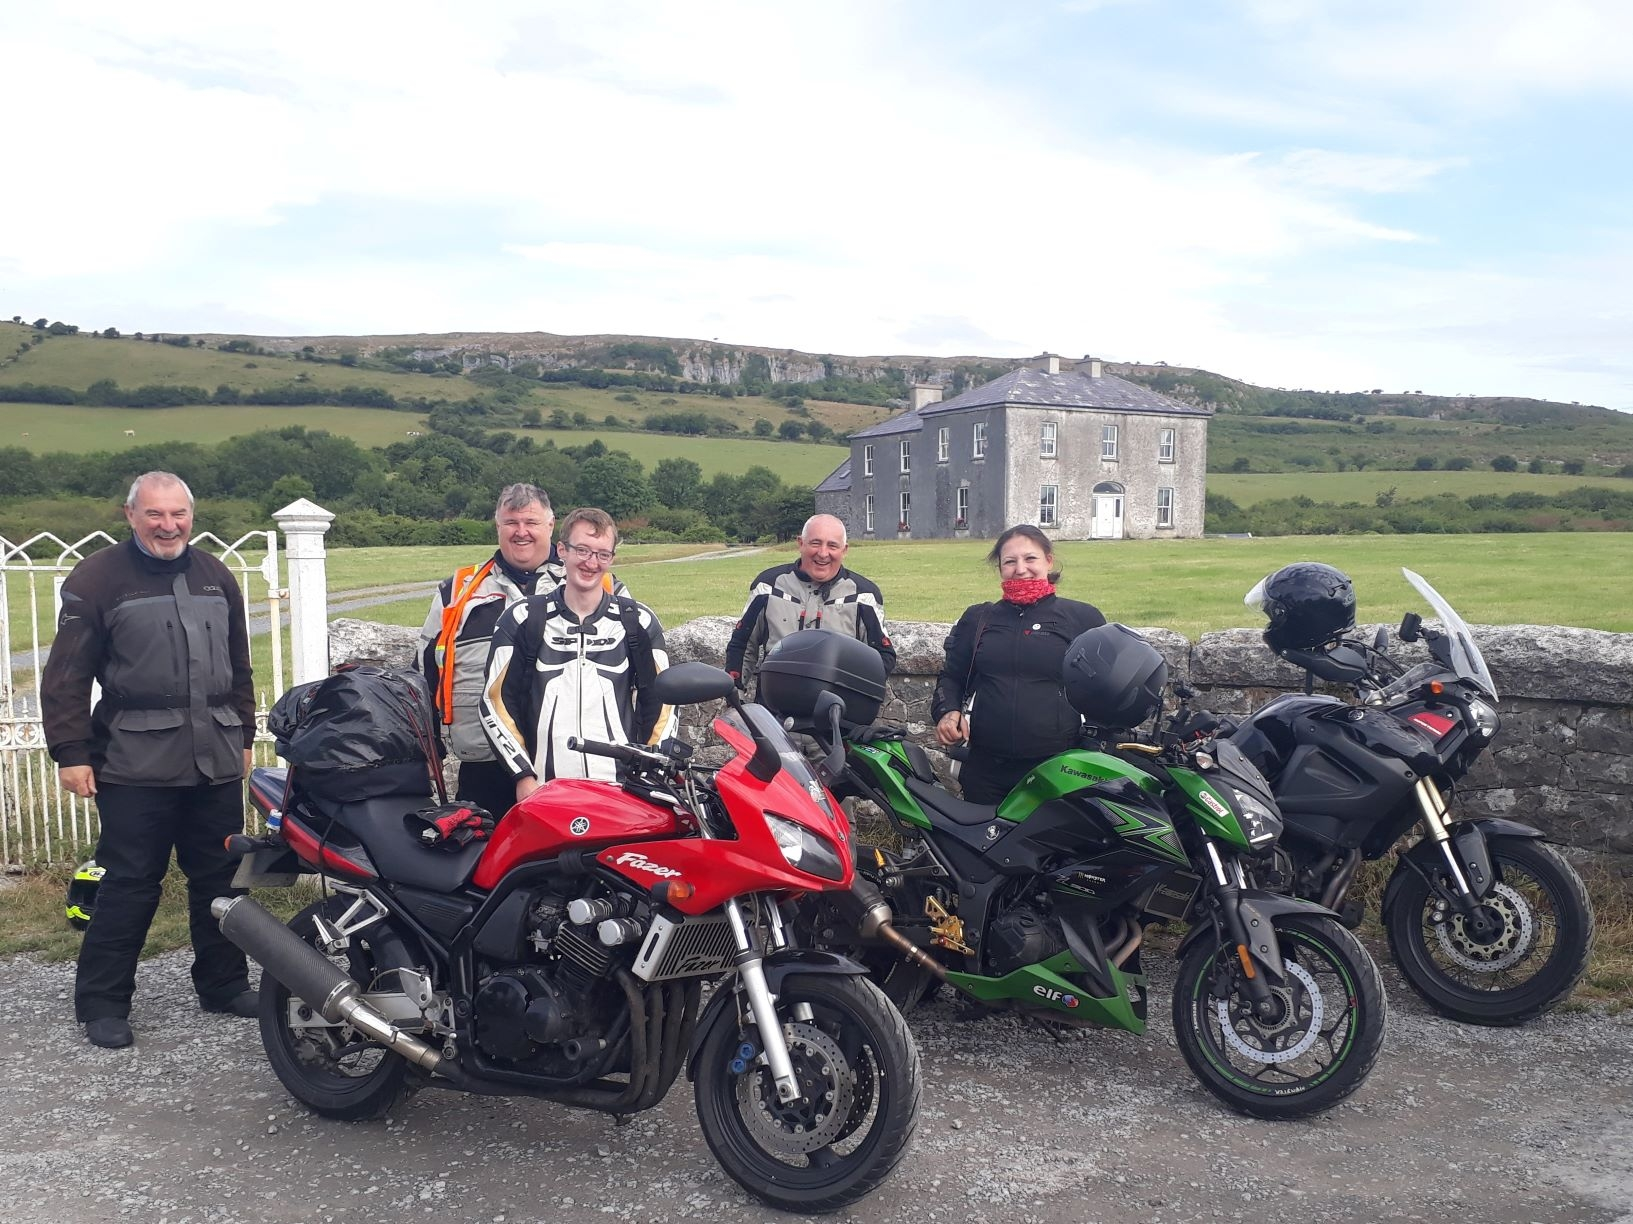 WILDIRISH Motorcycle Tours, Fr. Ted's House, Co. Clare.